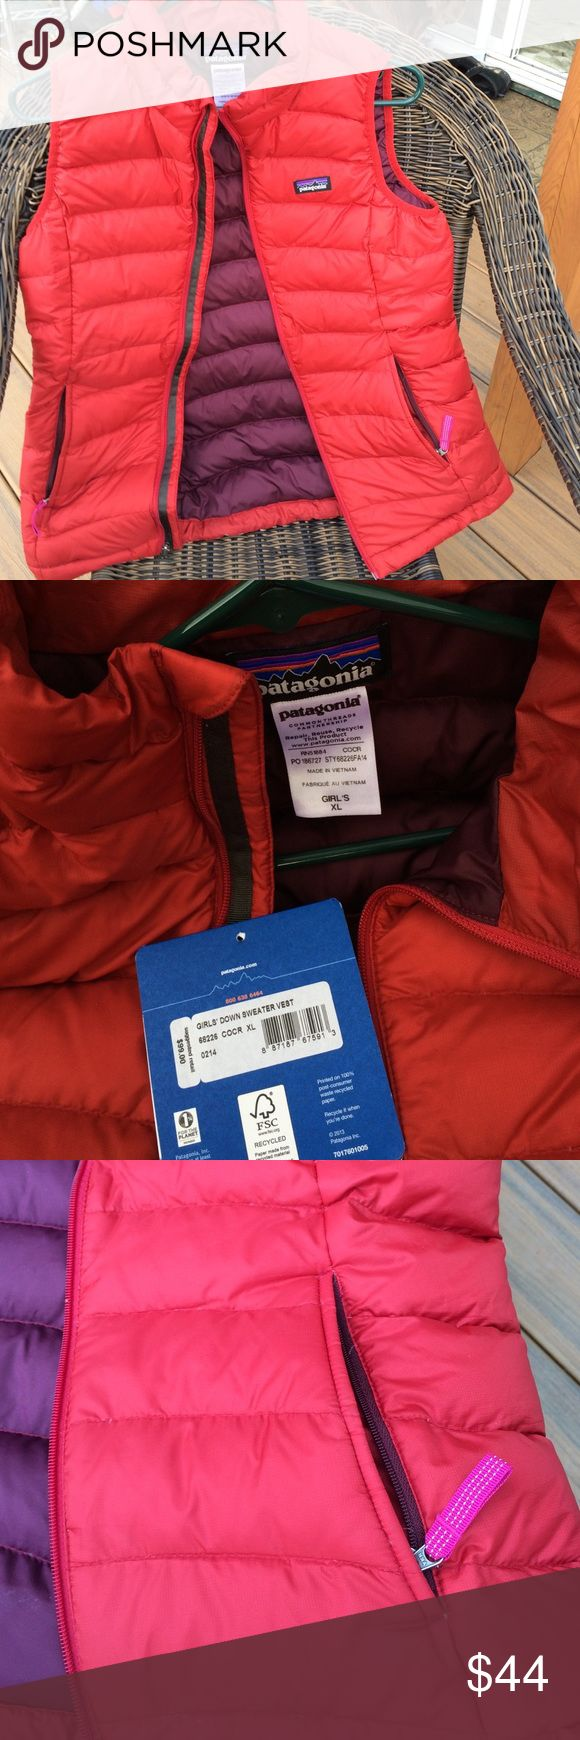 """Patagonia Down Sweater Vest in Red Girls XL Like new w detached tags Patagonia Down Sweater Vest in CorRed (red w brick red in it) Inside is plum. Worn only once. Pockets are fleece lined w pink reflective zipper pulls. Down is 100% traceable to source. Girls XL will fit also a Women XS. Shoulder to hem is 24.5"""", armpit to armpit across chest is 17"""", 19"""" across at bottom hem. Happy Red Patagucci y'all💃💋 Patagonia Jackets & Coats Vests"""